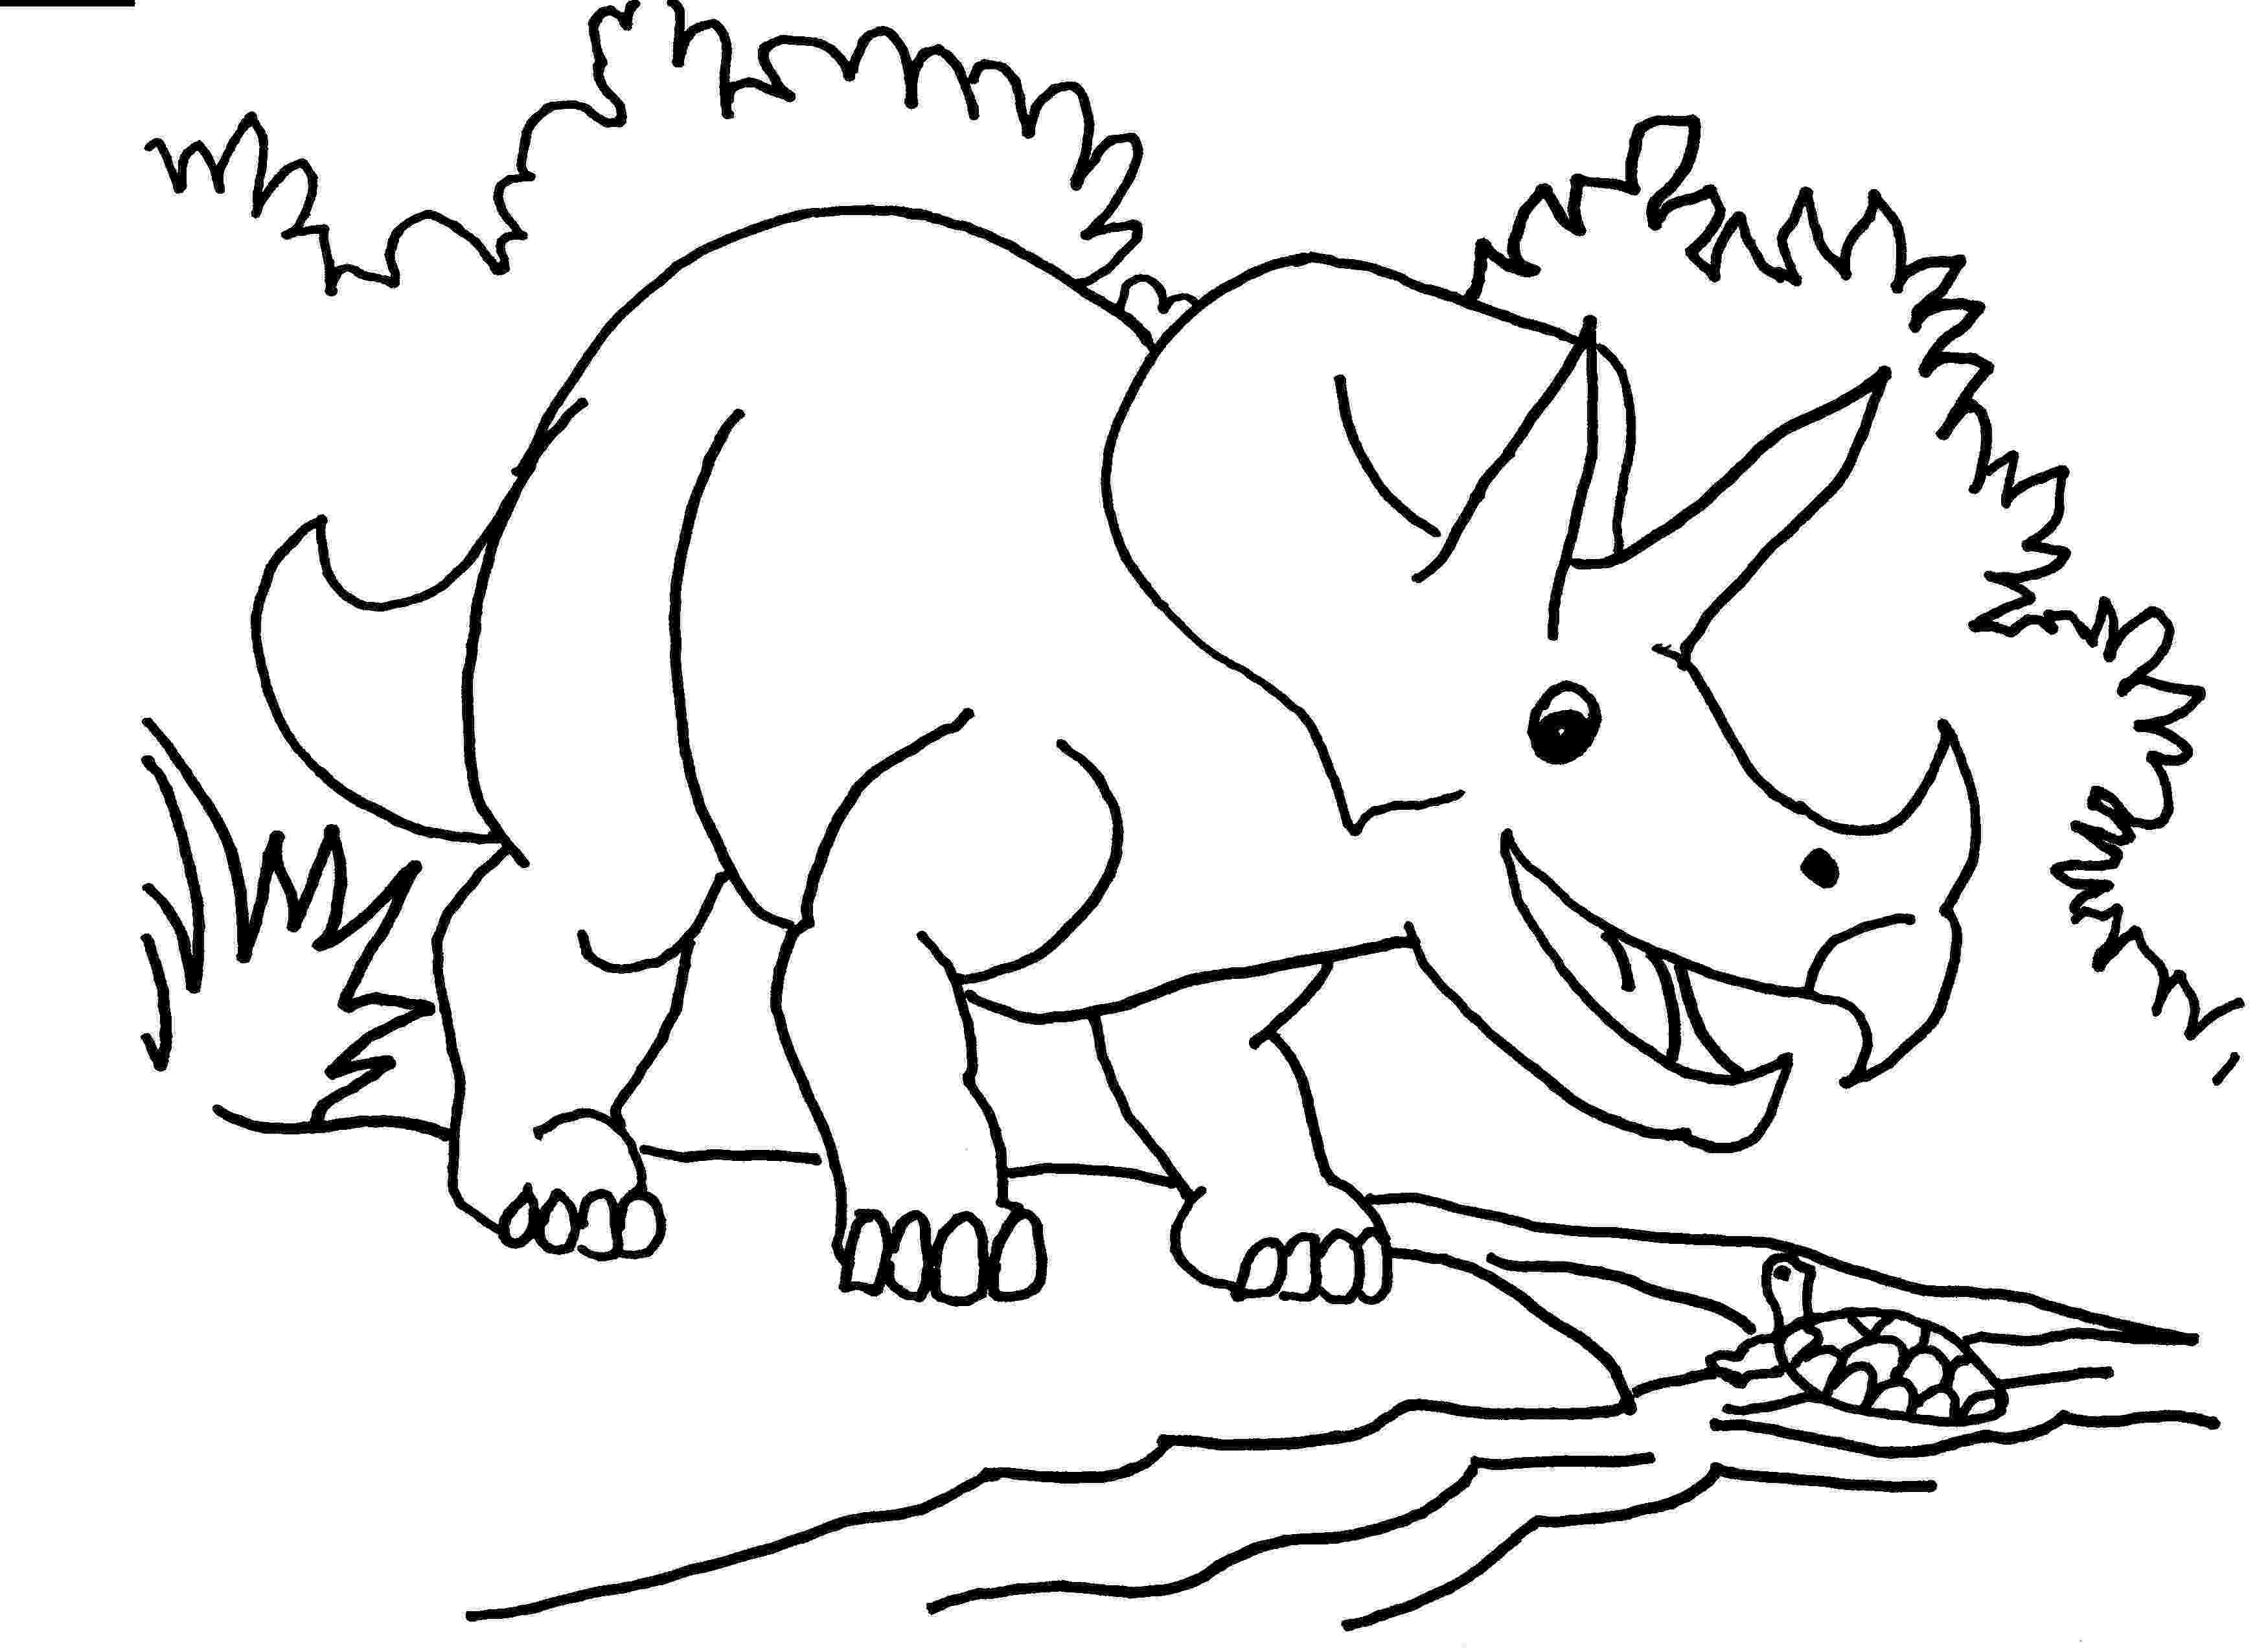 triceratops picture free printable triceratops coloring pages for kids picture triceratops 1 1